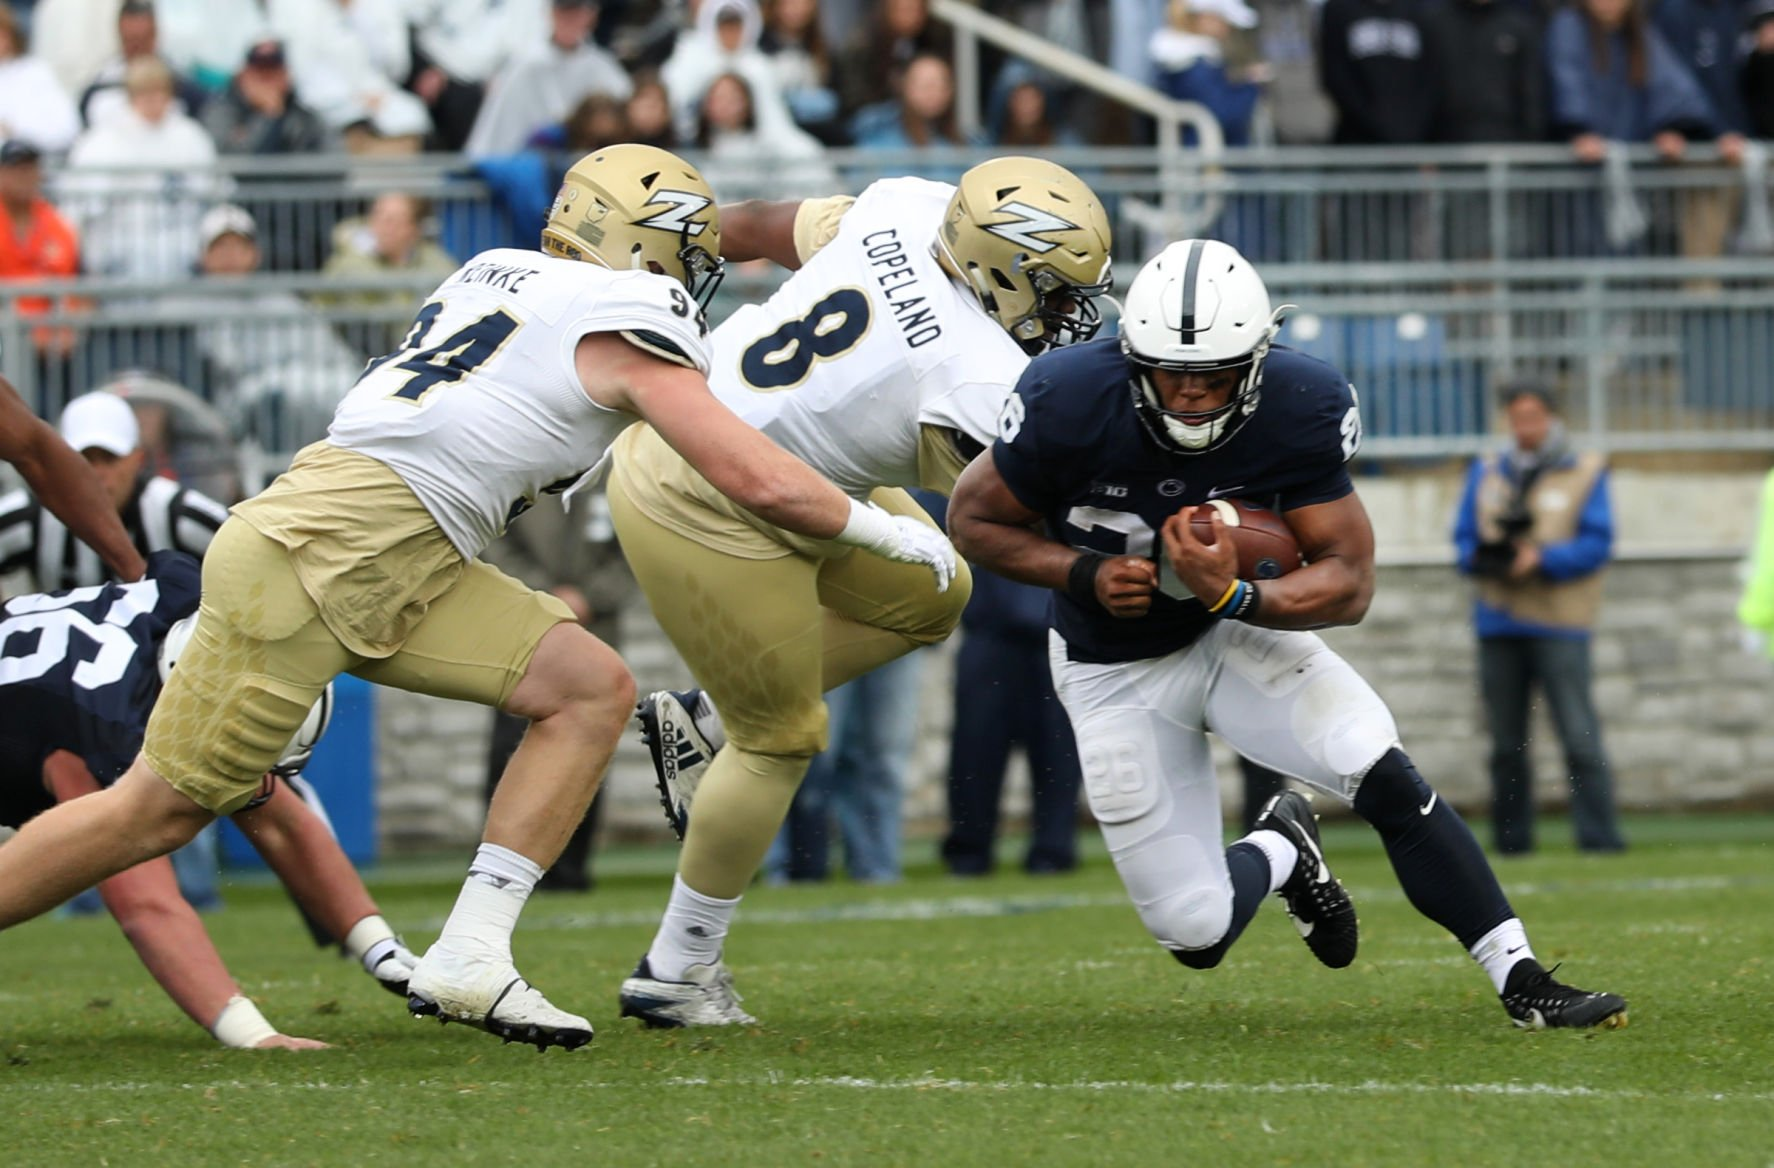 Penn State football pounds Akron as Barkley puts up big numbers